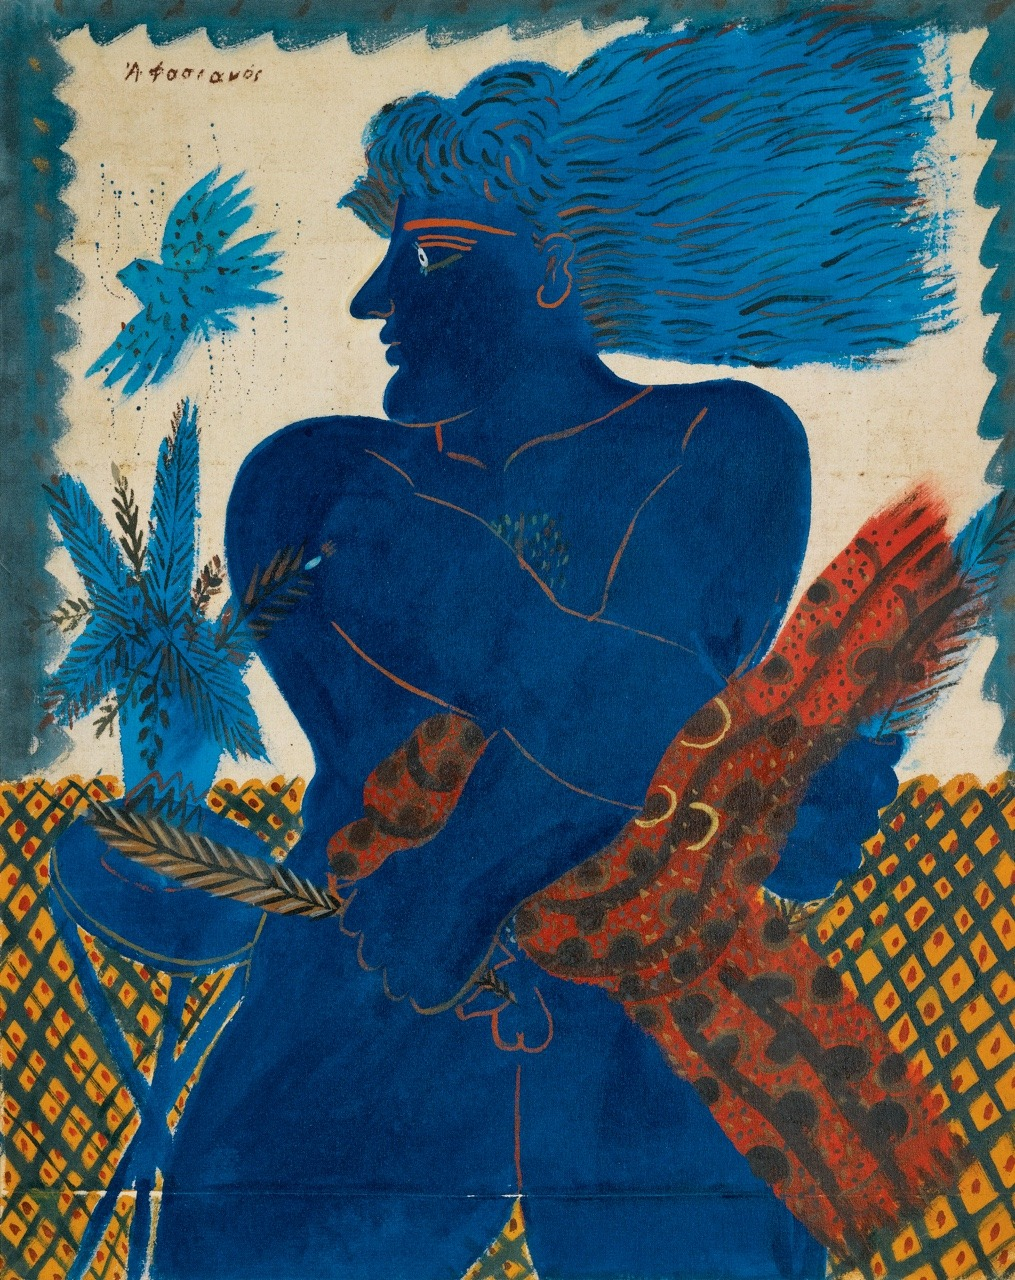 """terminusantequem: """"Alecos Fassianos (Greek, b. 1935), ATHENEAN WITH BLUE BIRD. Acrylic on canvas, 79 by 63cm (31 by 24¾in.) """""""